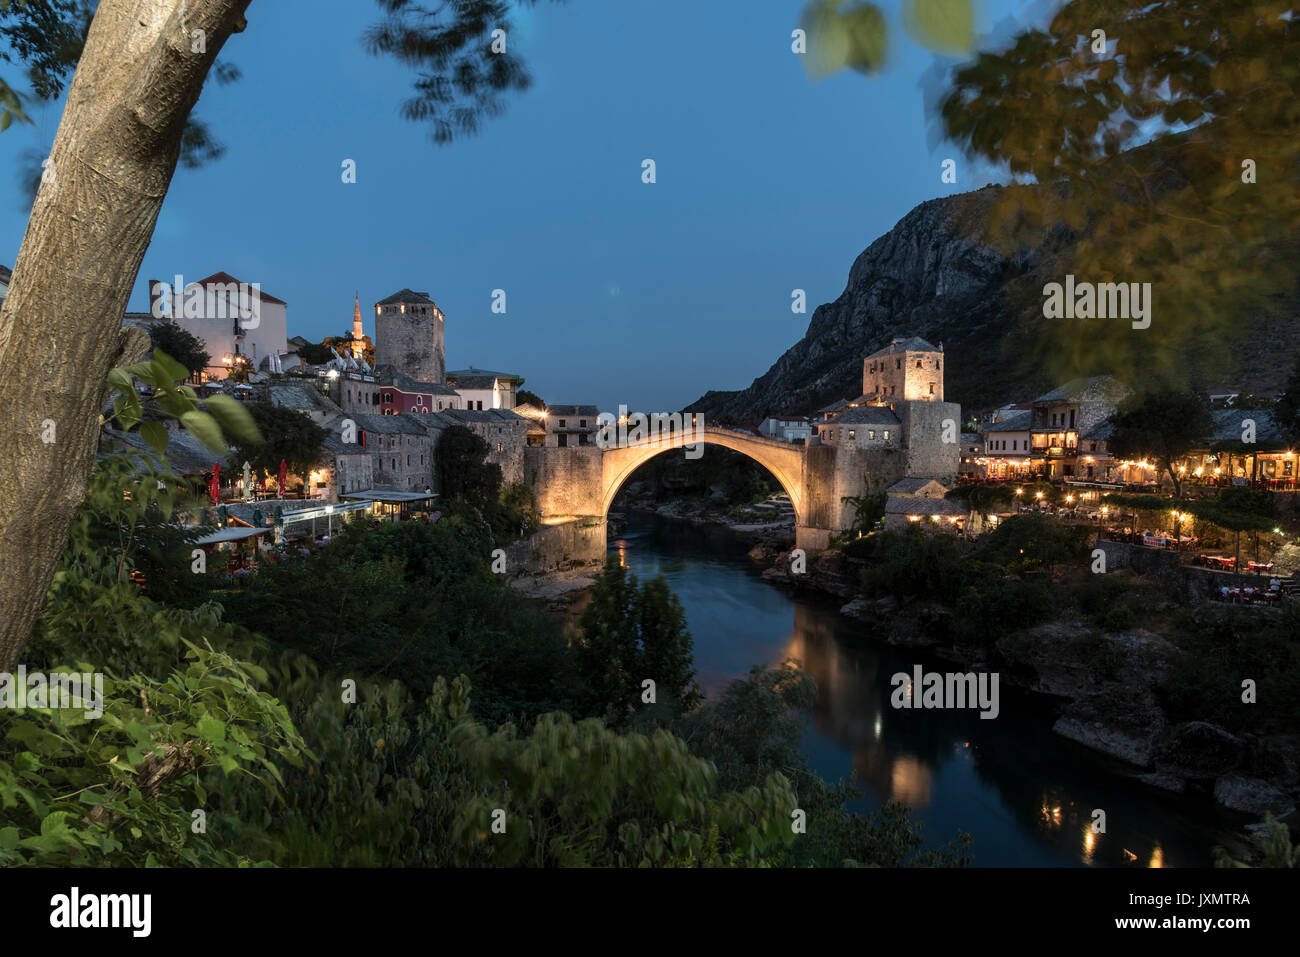 Stari Most at dusk, Mostar, Federation of Bosnia and Herzegovina, Bosnia and Herzegovina, Europe - Stock Image